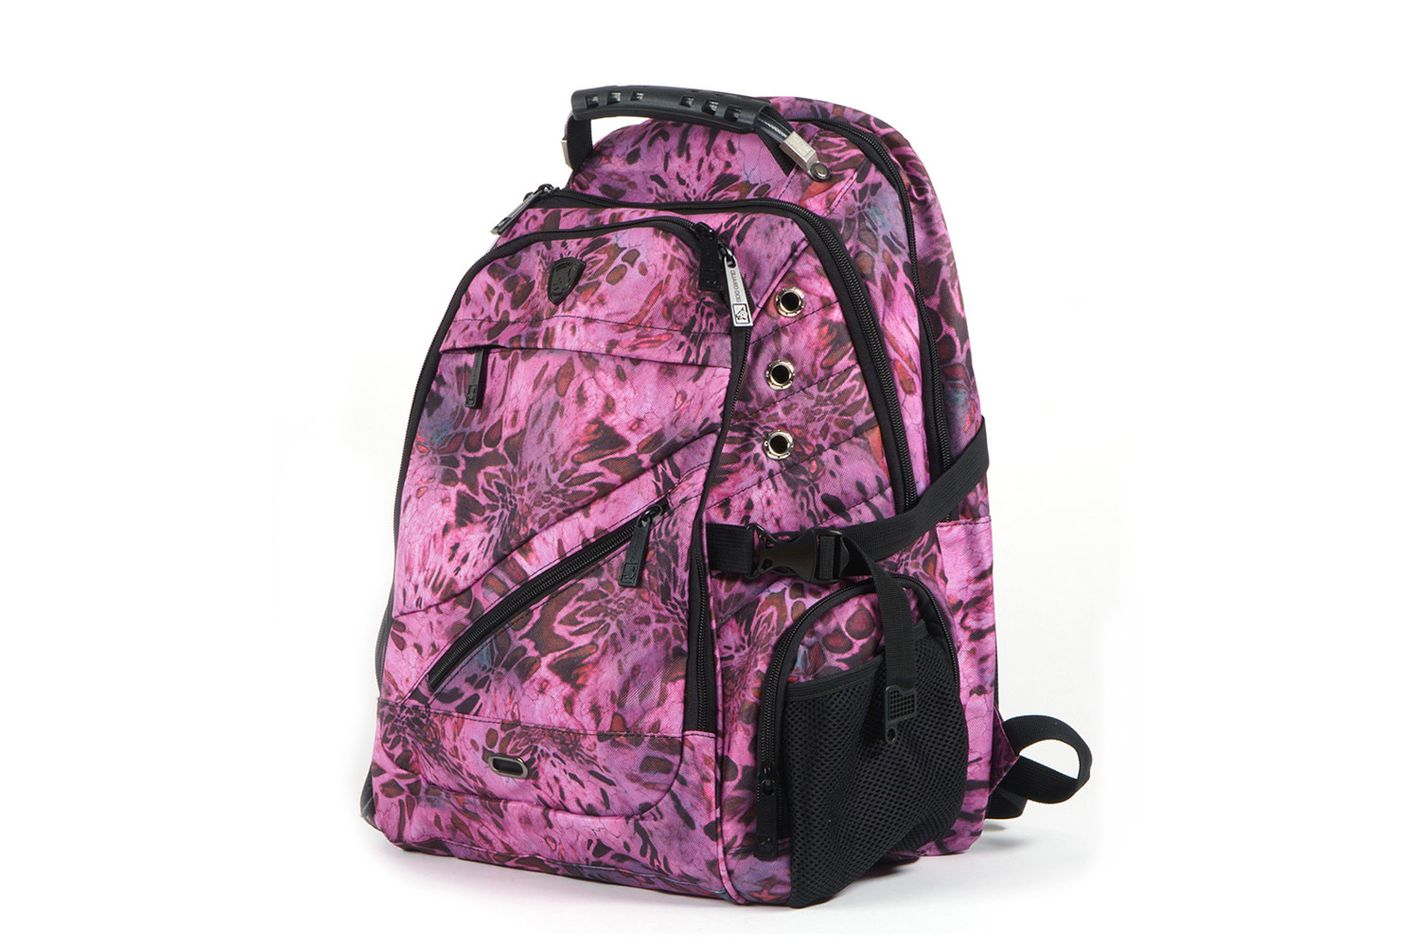 ed5c533861 Parents Are Buying Bulletproof Backpacks After Shootings